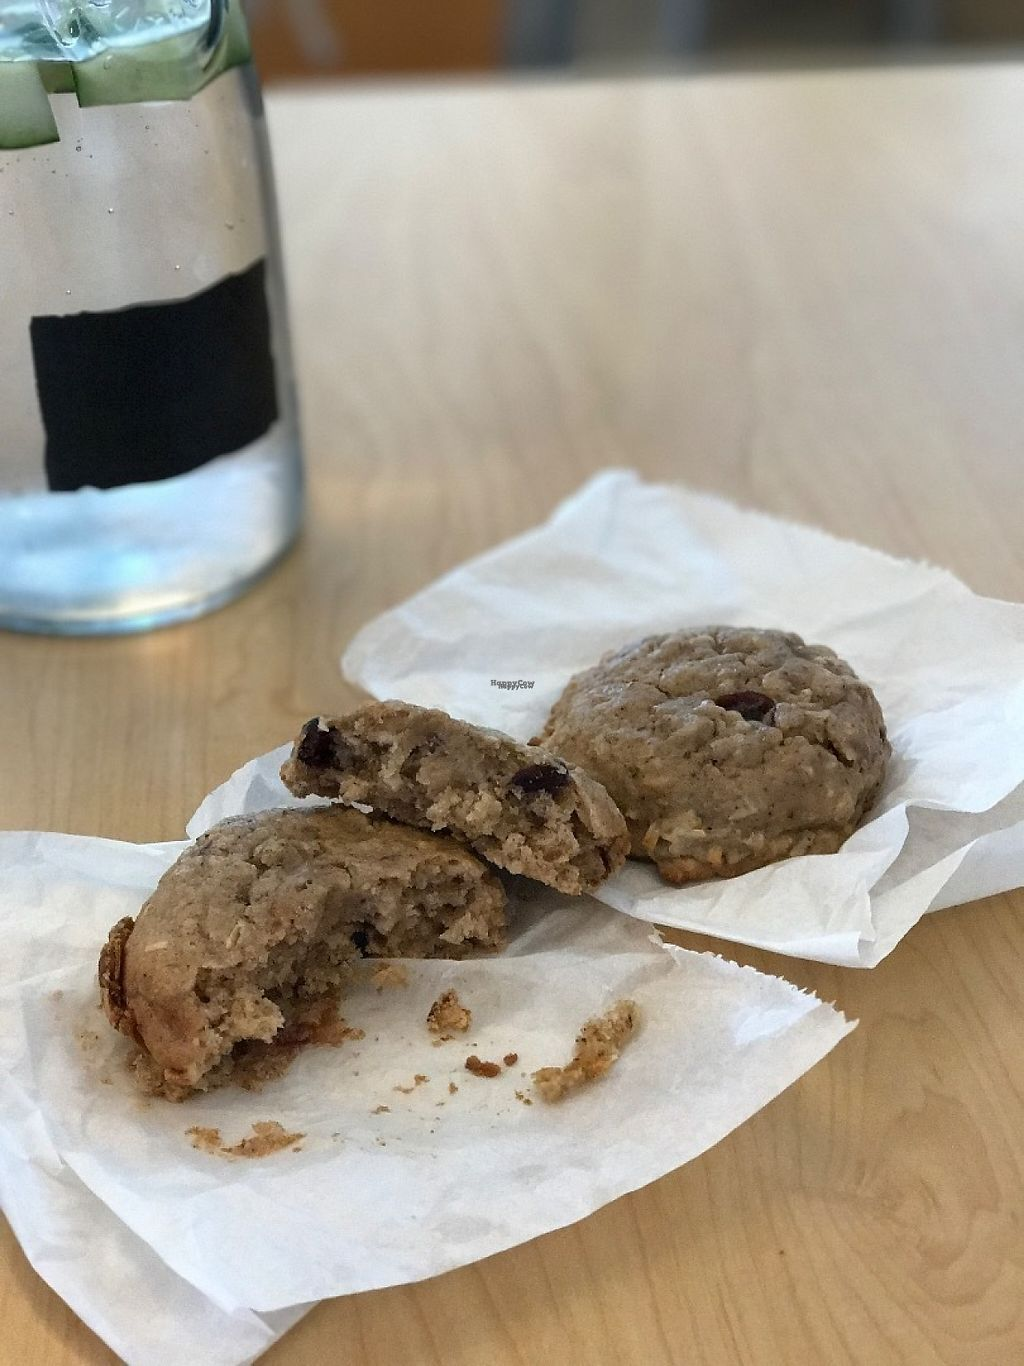 """Photo of Wild Rabbit Cafe and Health Bar  by <a href=""""/members/profile/DillonAbraham"""">DillonAbraham</a> <br/>Coconut Rasberry cookie <br/> February 14, 2017  - <a href='/contact/abuse/image/64764/226390'>Report</a>"""